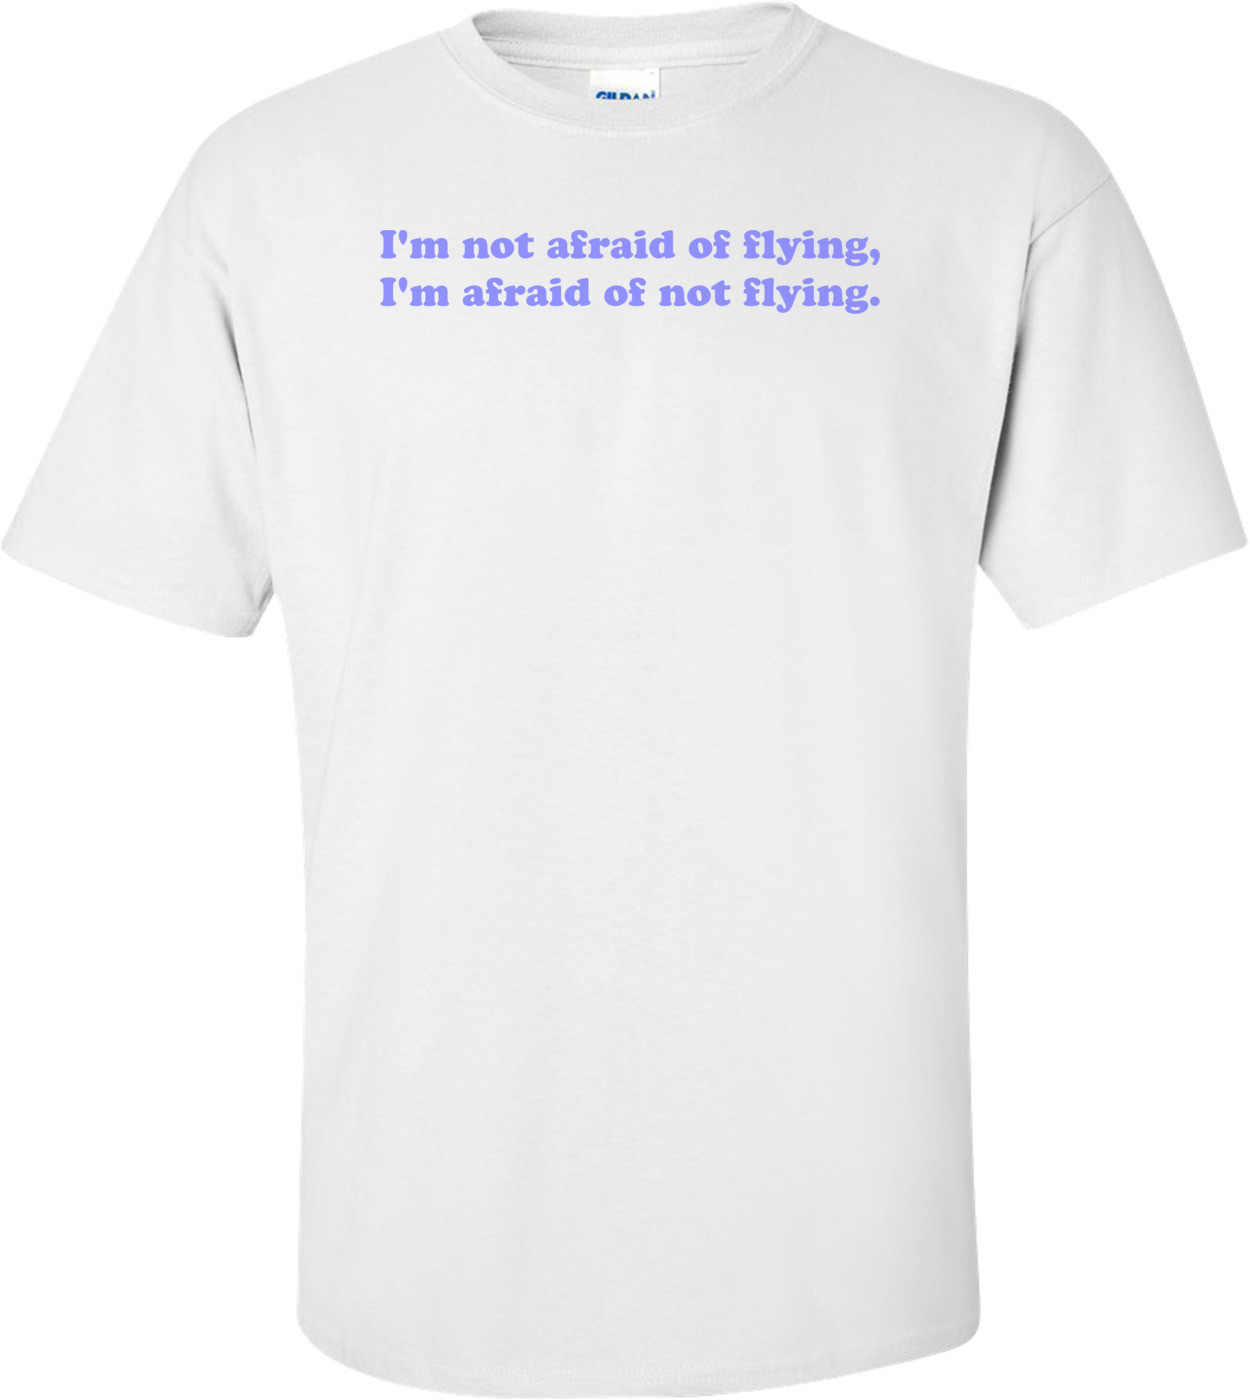 I'm not afraid of flying, I'm afraid of not flying. Shirt